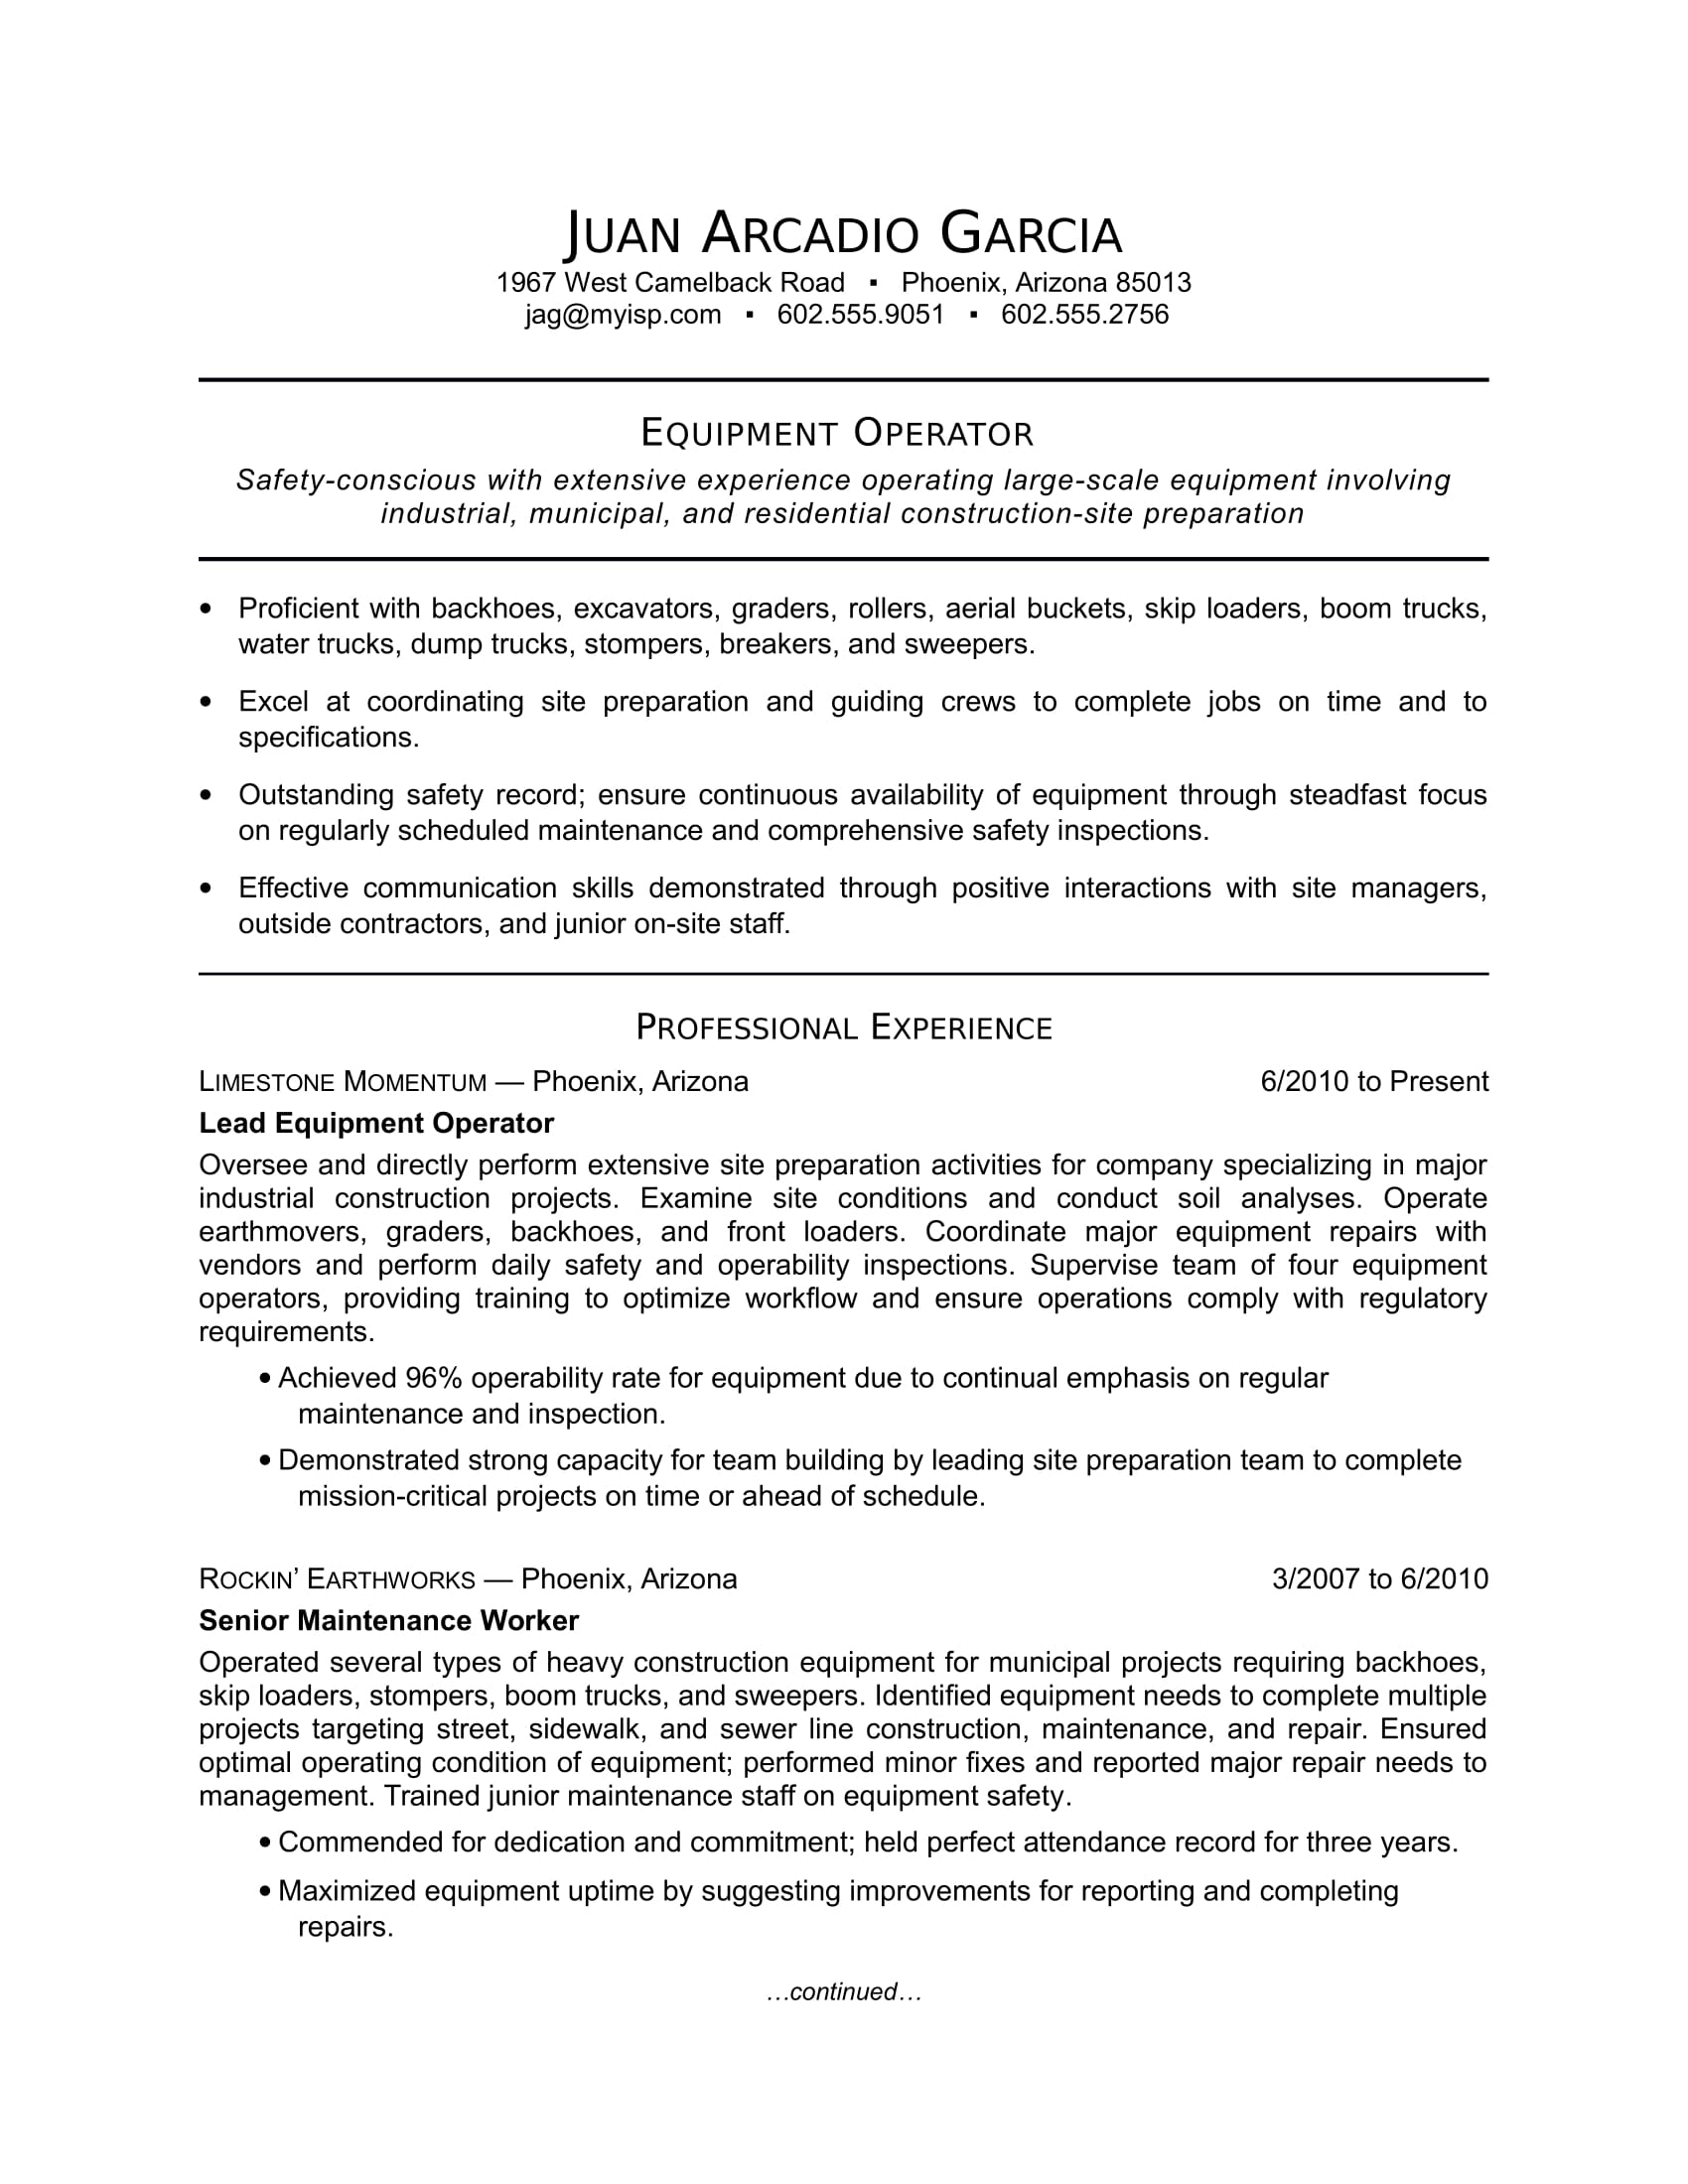 Sample Resume For An Equipment Operator  Construction Resume Sample